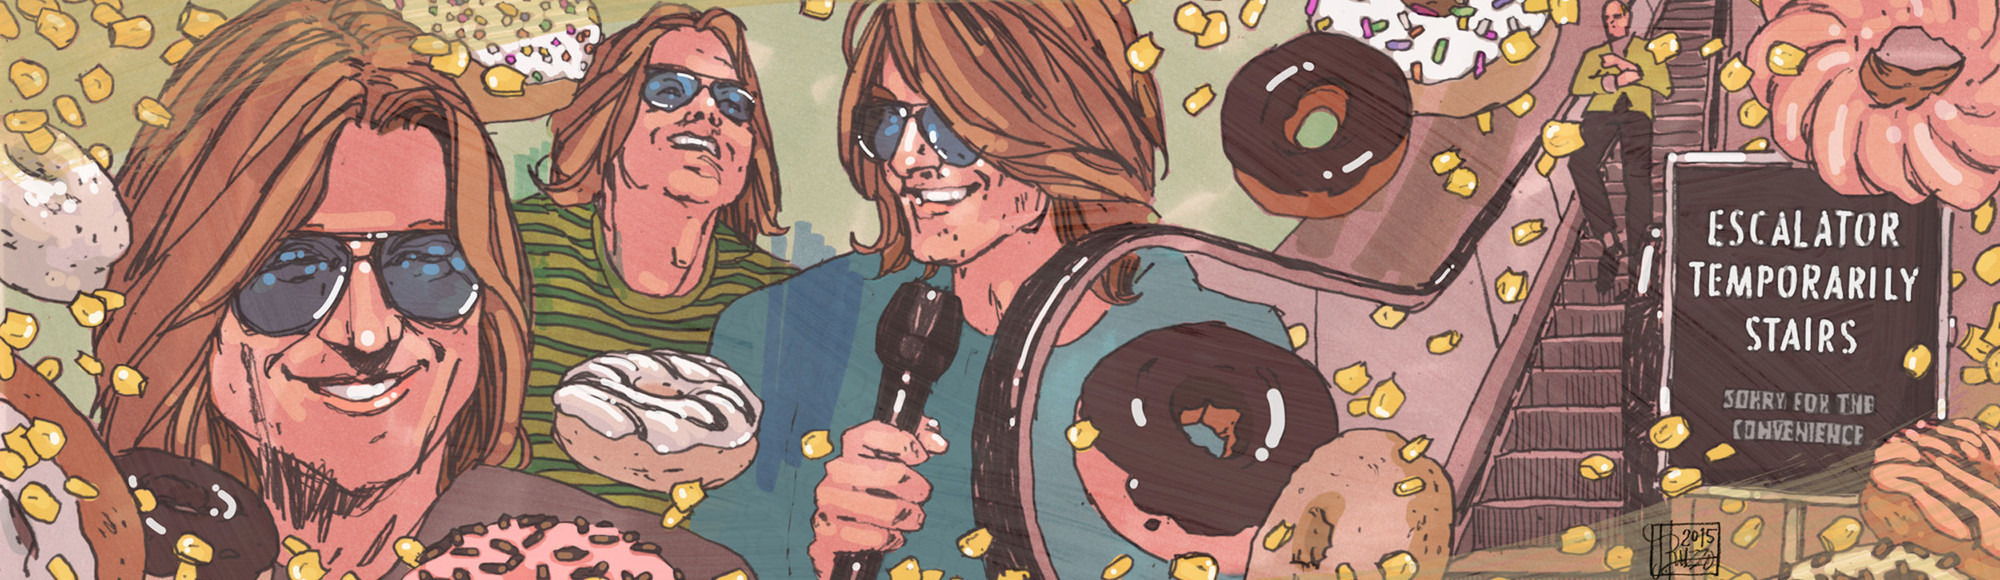 Comedians Discuss Mitch Hedberg's Life and Legacy